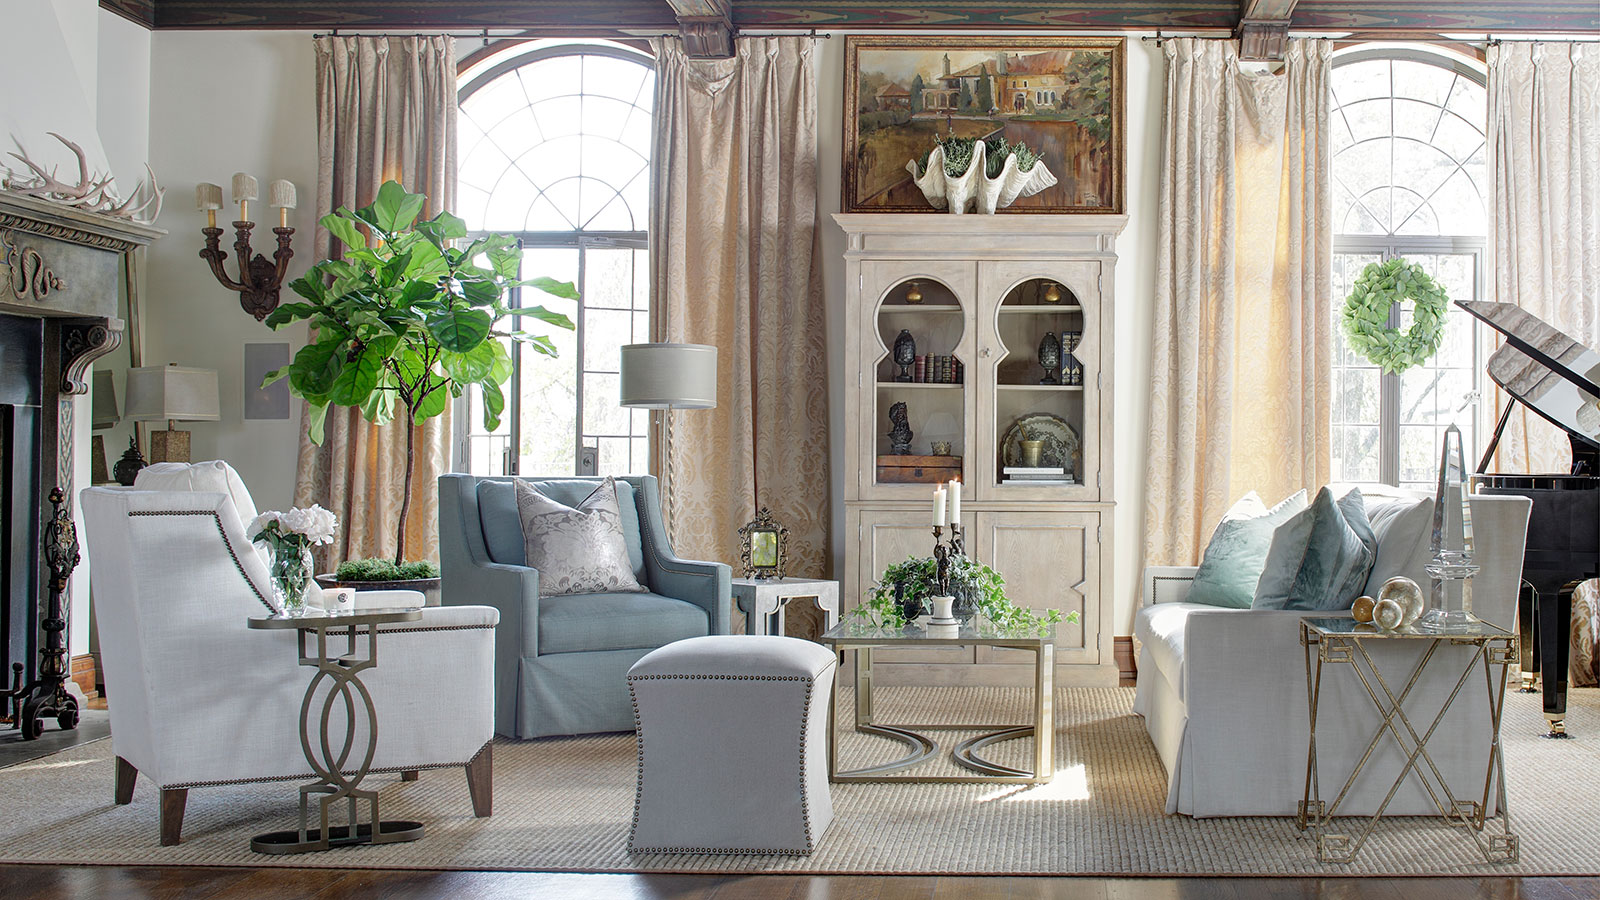 Reflections on transitional furniture style gabby - What is transitional style ...